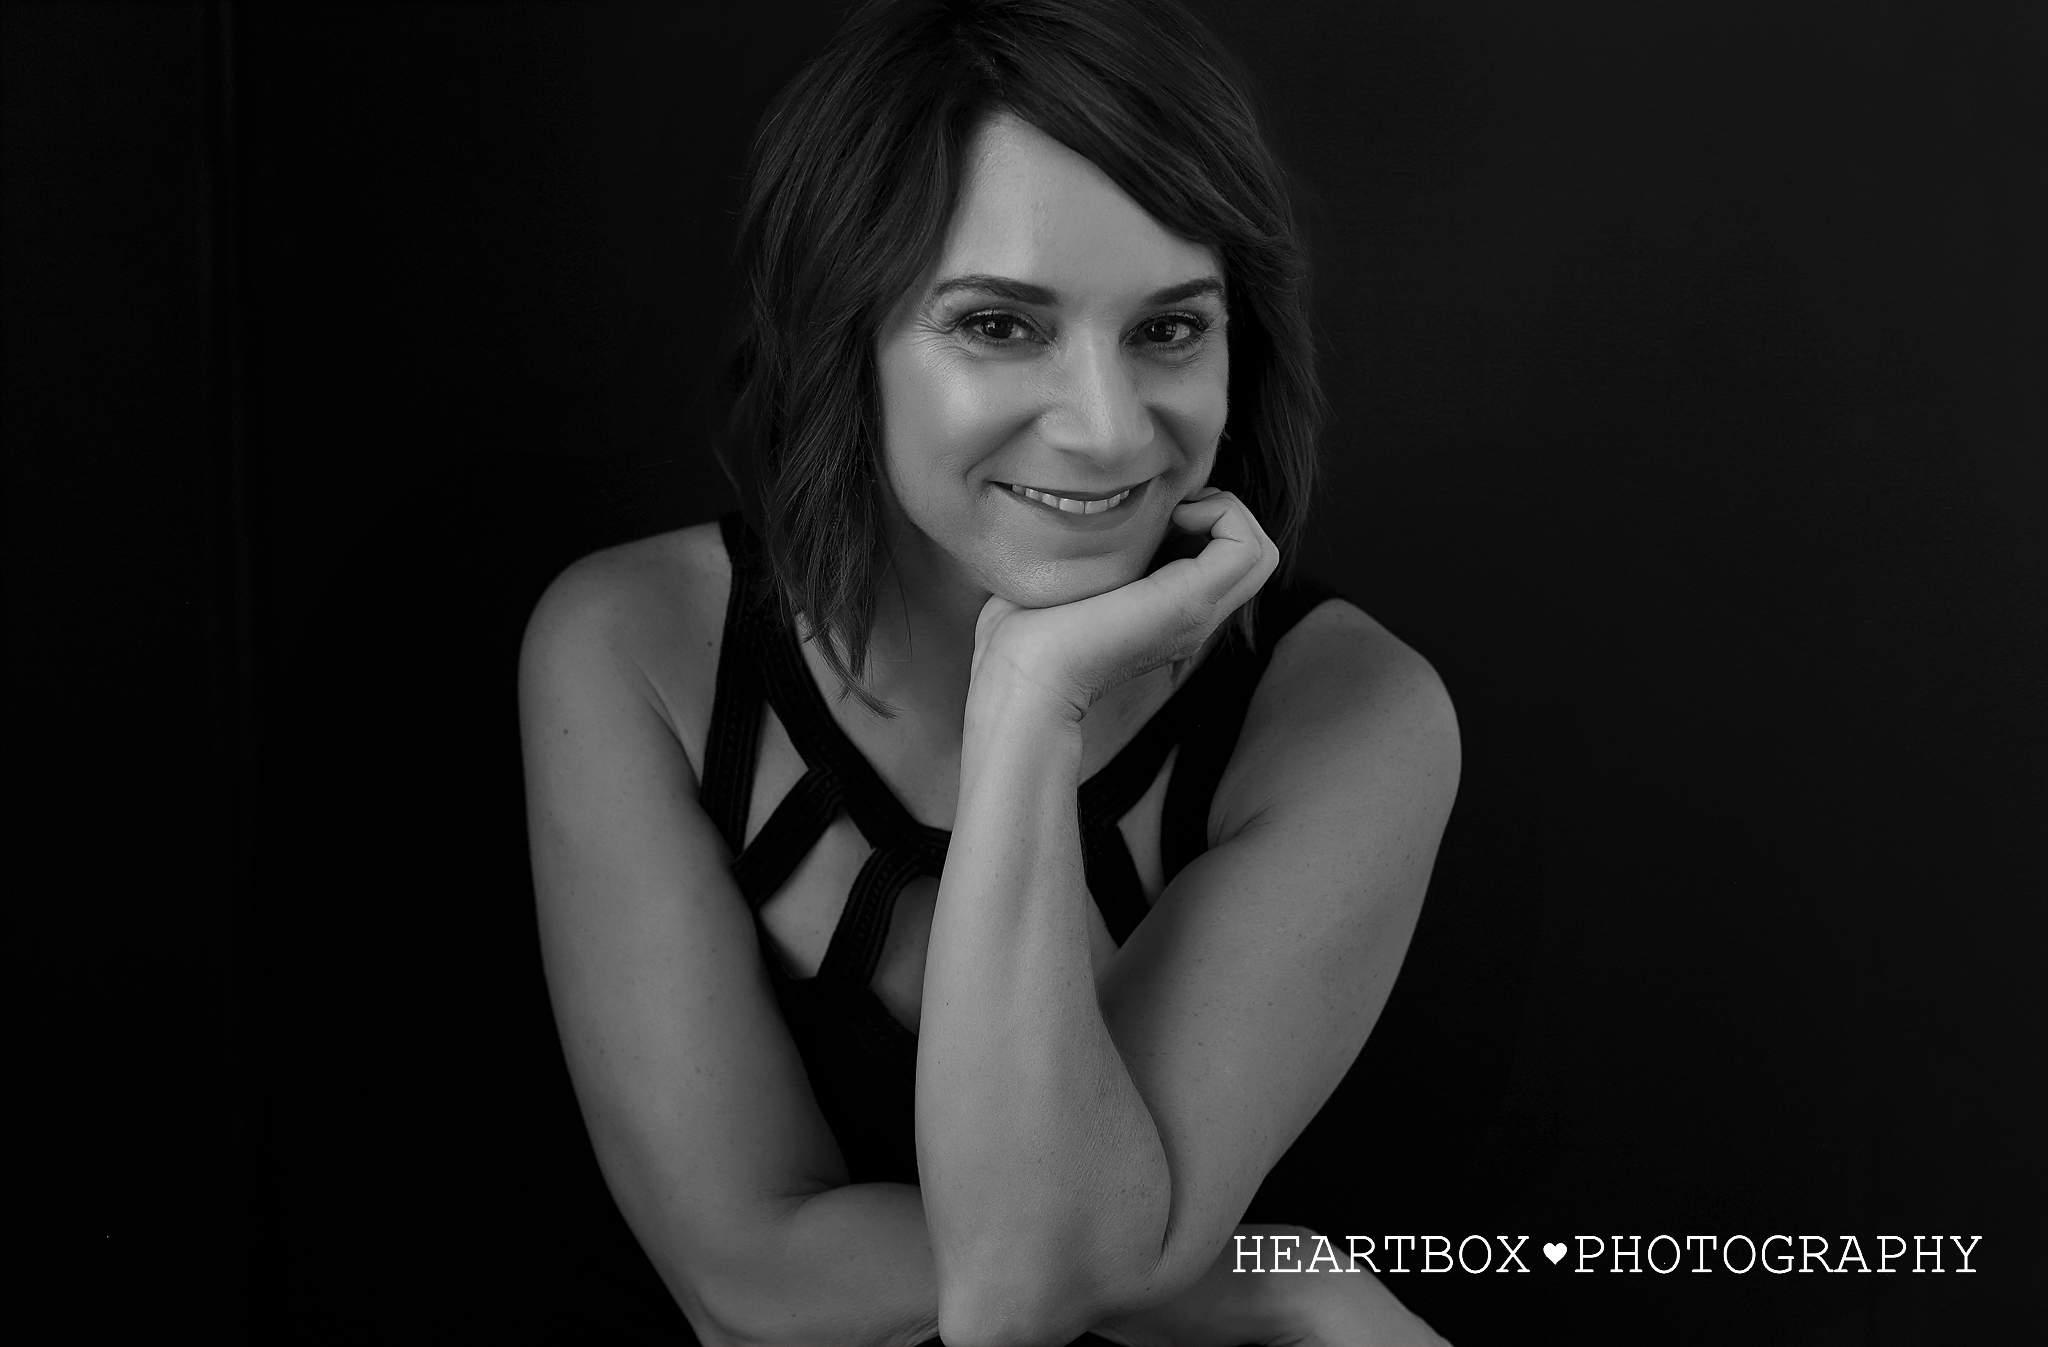 Portraits by Heartbox Photography. Copyright 2017. All rights reserved._0778.jpg